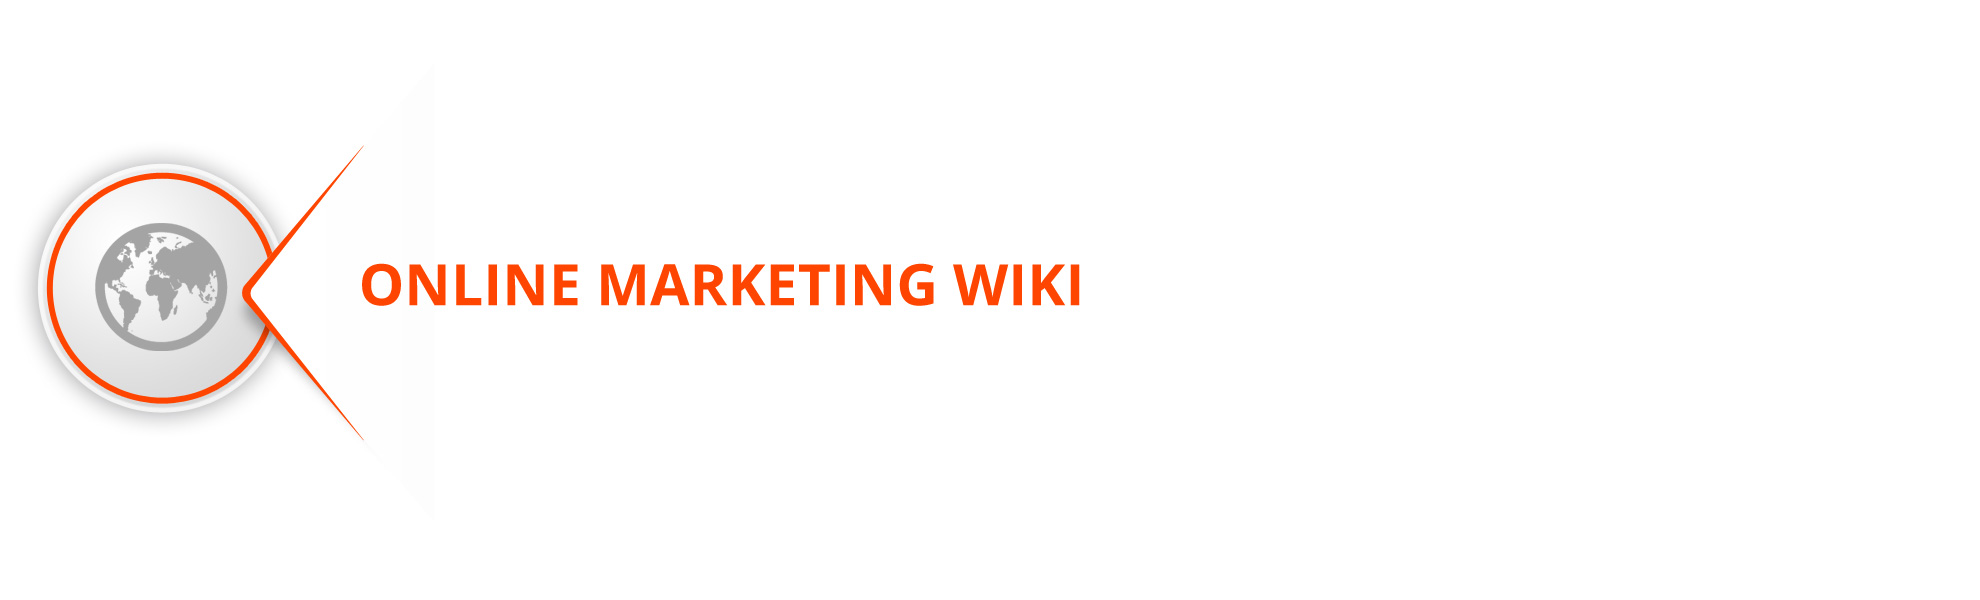 online-marketing-wiki-azobit